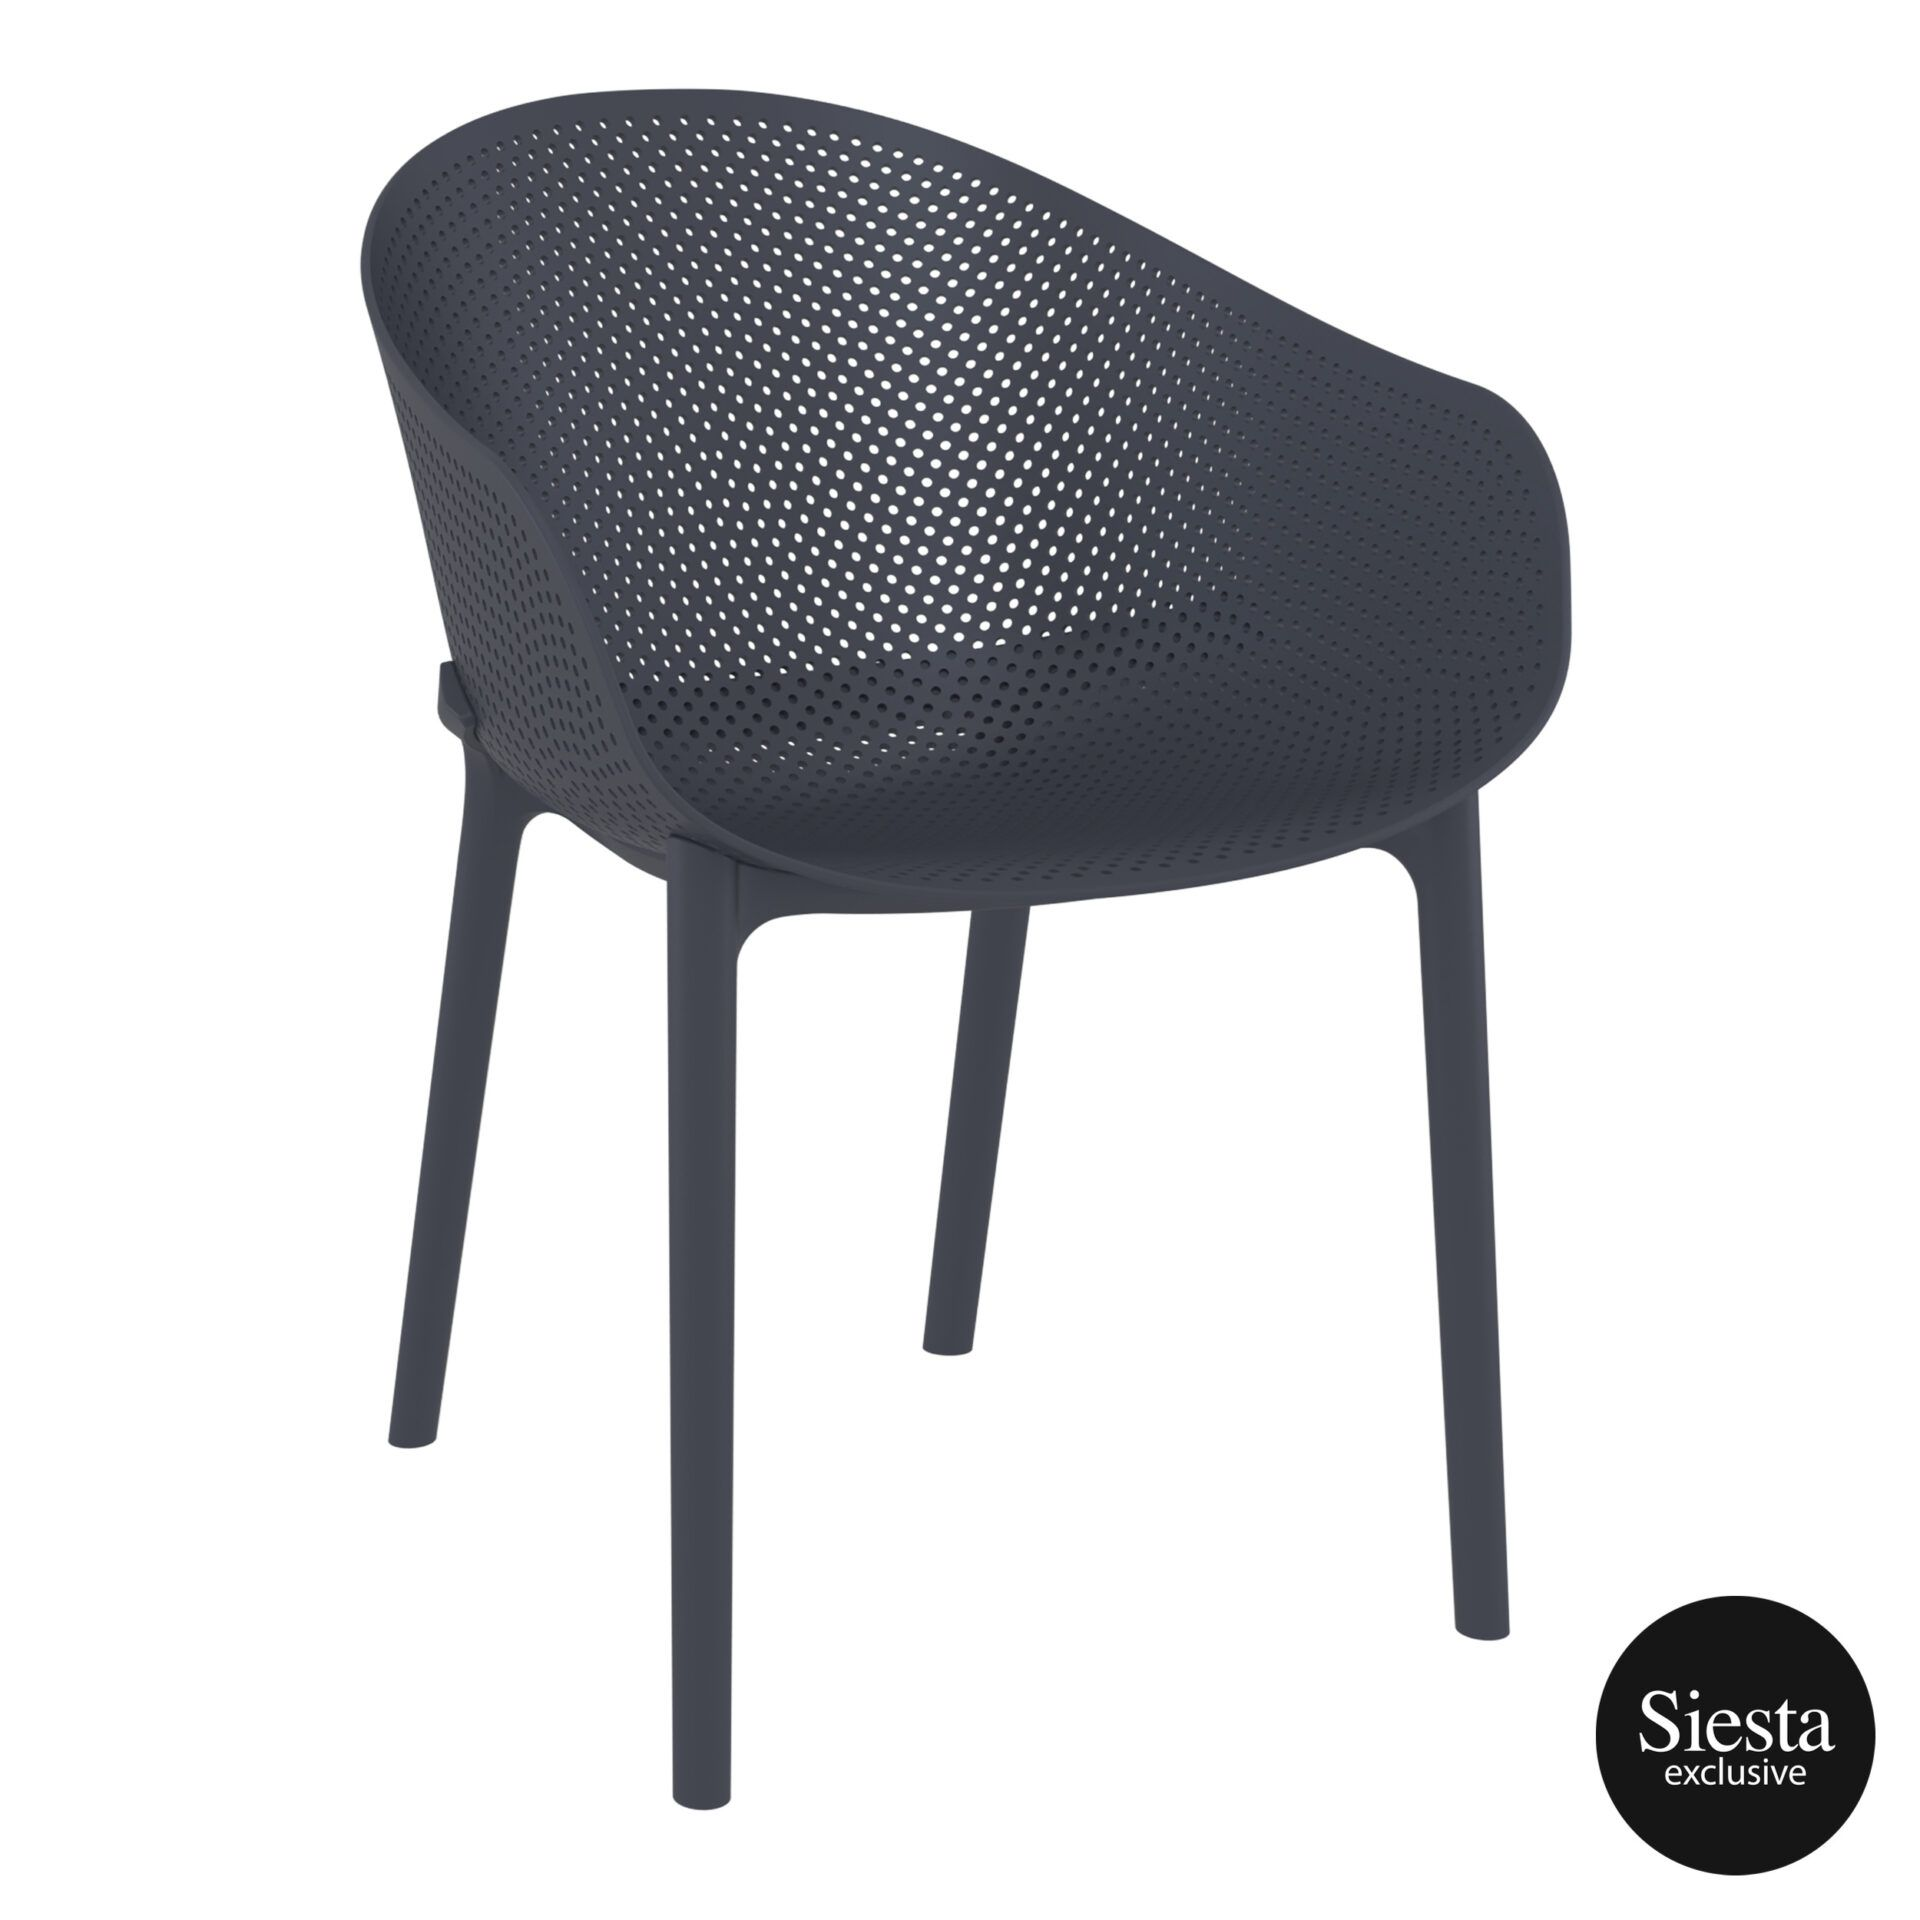 outdoor seating polypropylene sky chair darkgrey front side 2